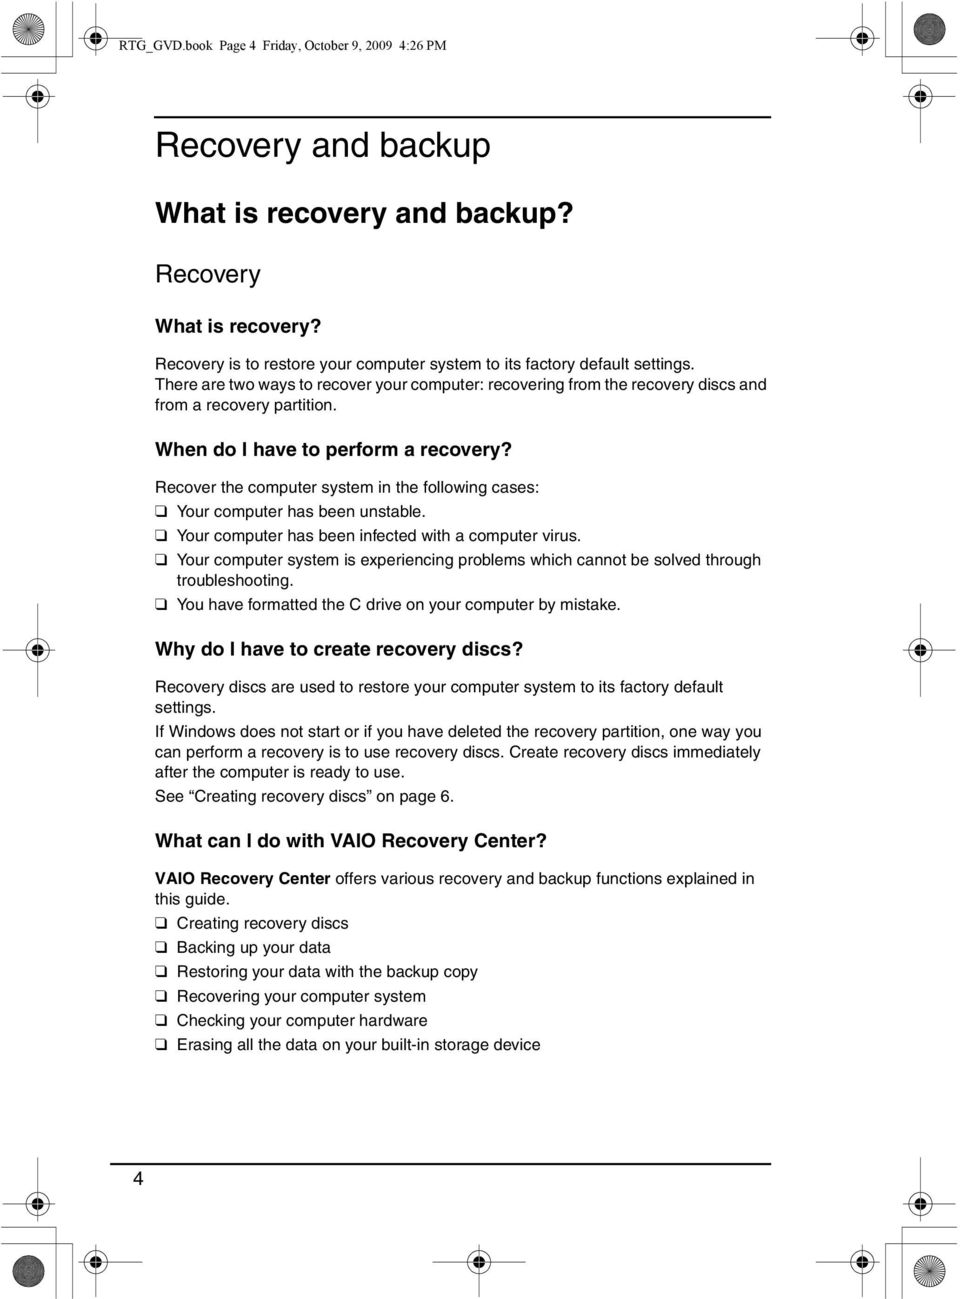 When do I have to perform a recovery? Recover the computer system in the following cases: Your computer has been unstable. Your computer has been infected with a computer virus.